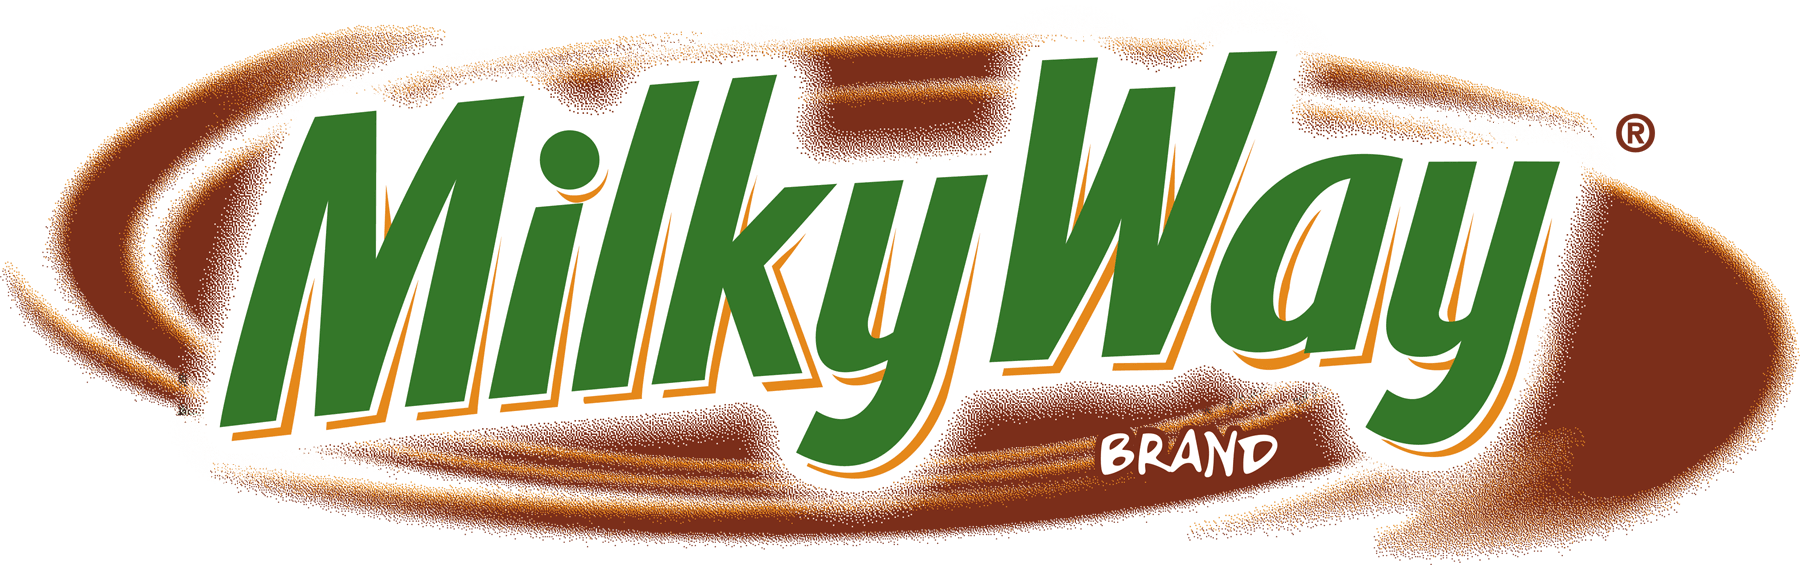 Milky Way Candy Clipart.